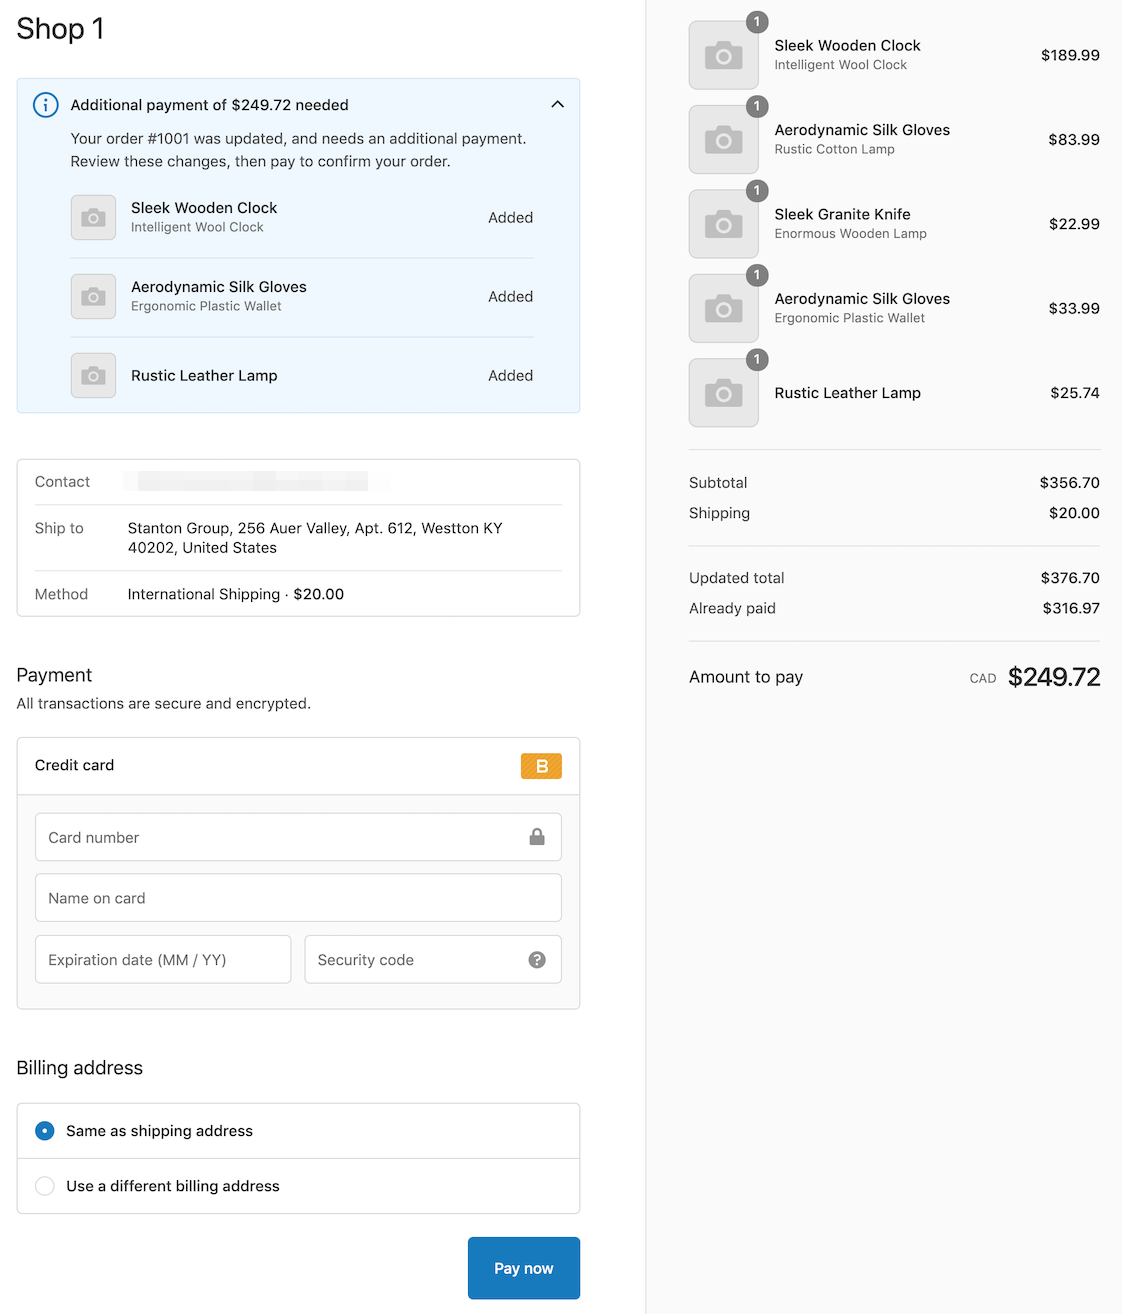 Image showing the checkout page when additional payments are needed